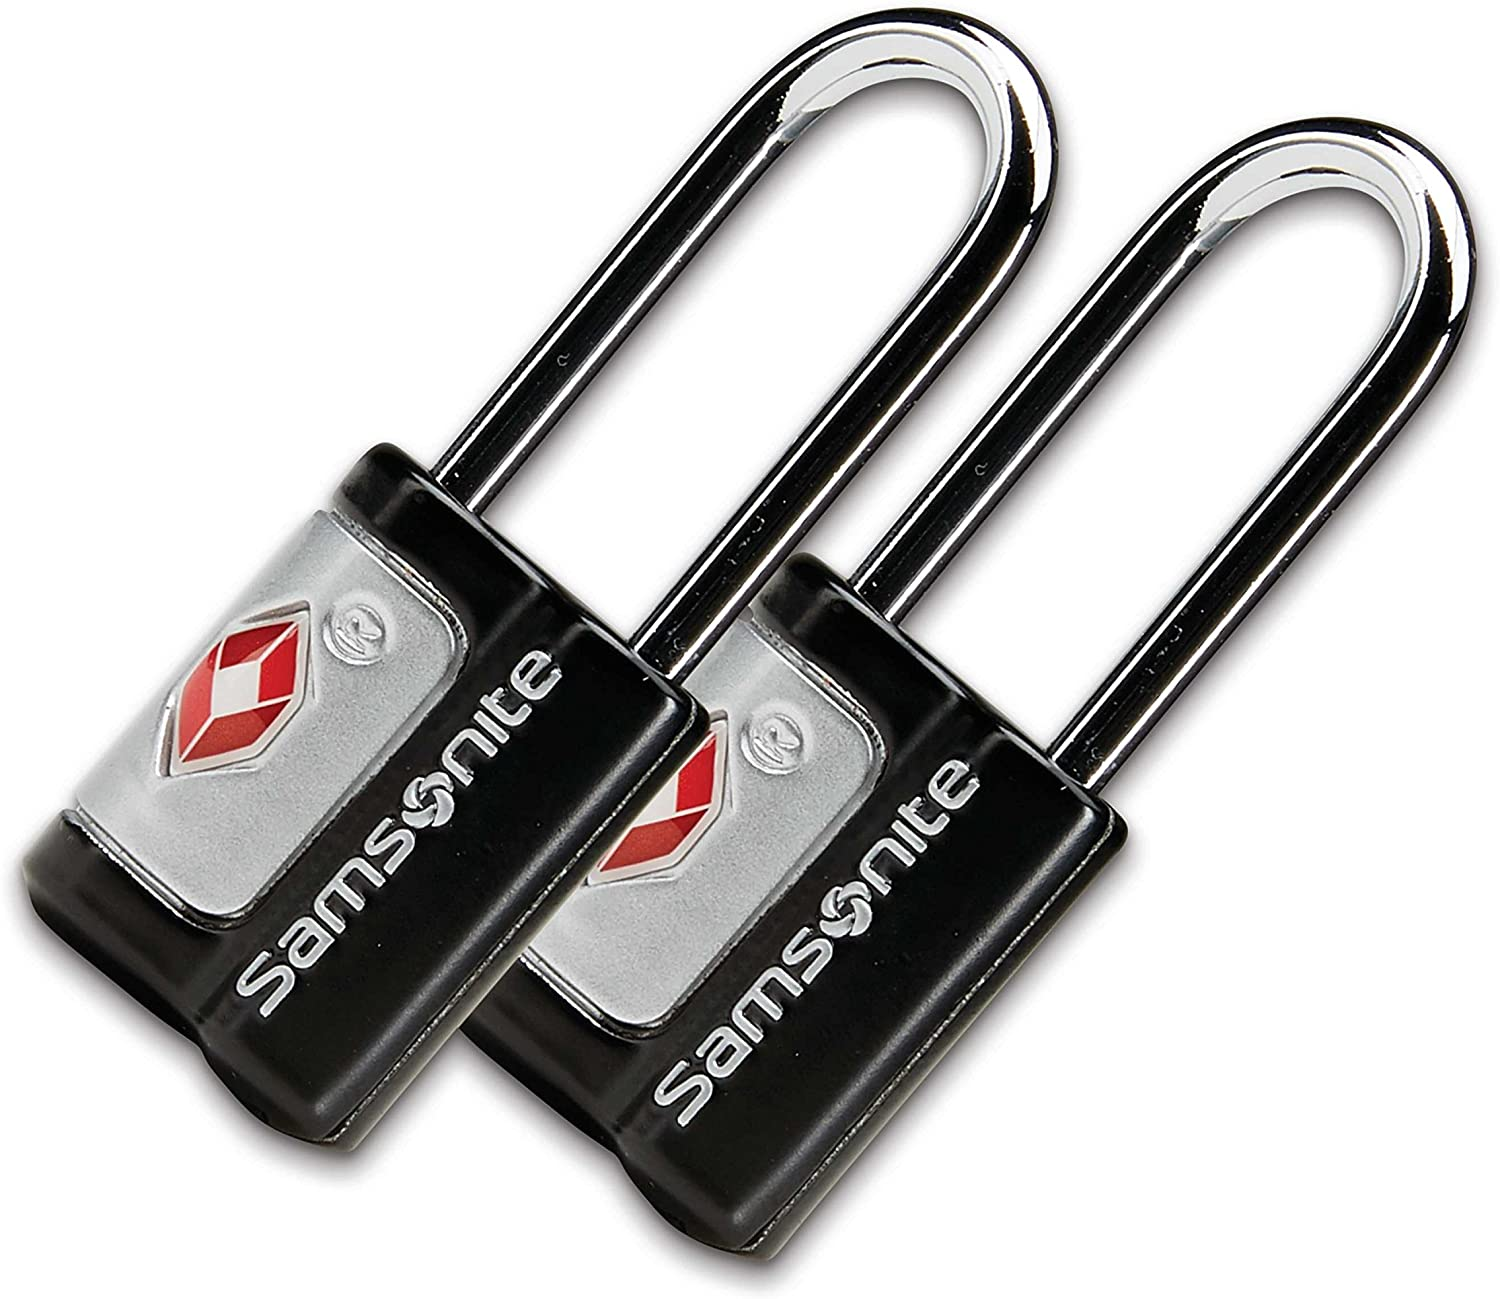 | Samsonite Travel Sentry 2-pack Key Locks, Black | Luggage Locks